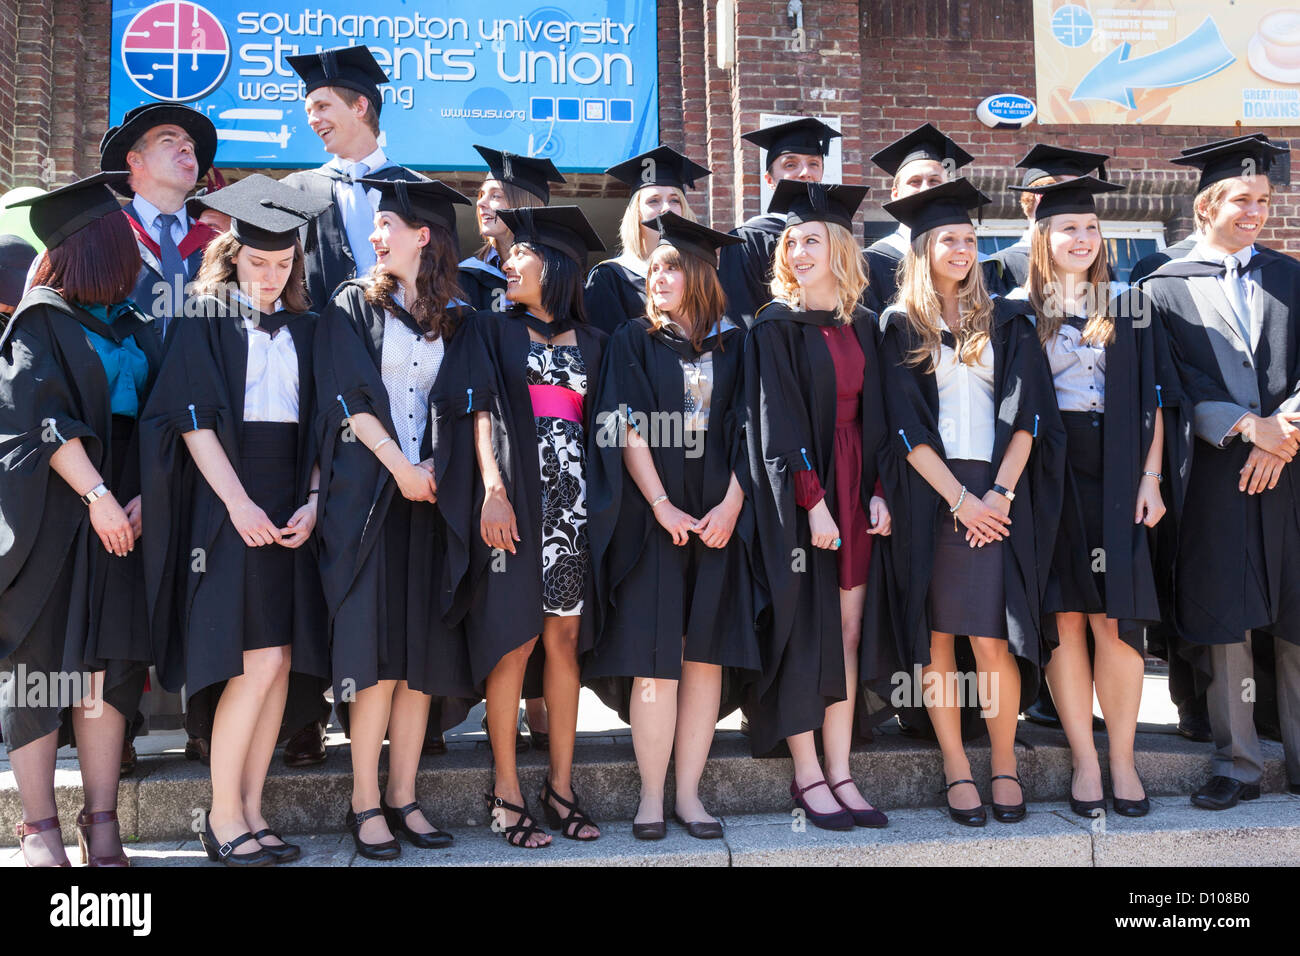 University Of Southampton Graduation High Resolution Stock Photography And Images Alamy